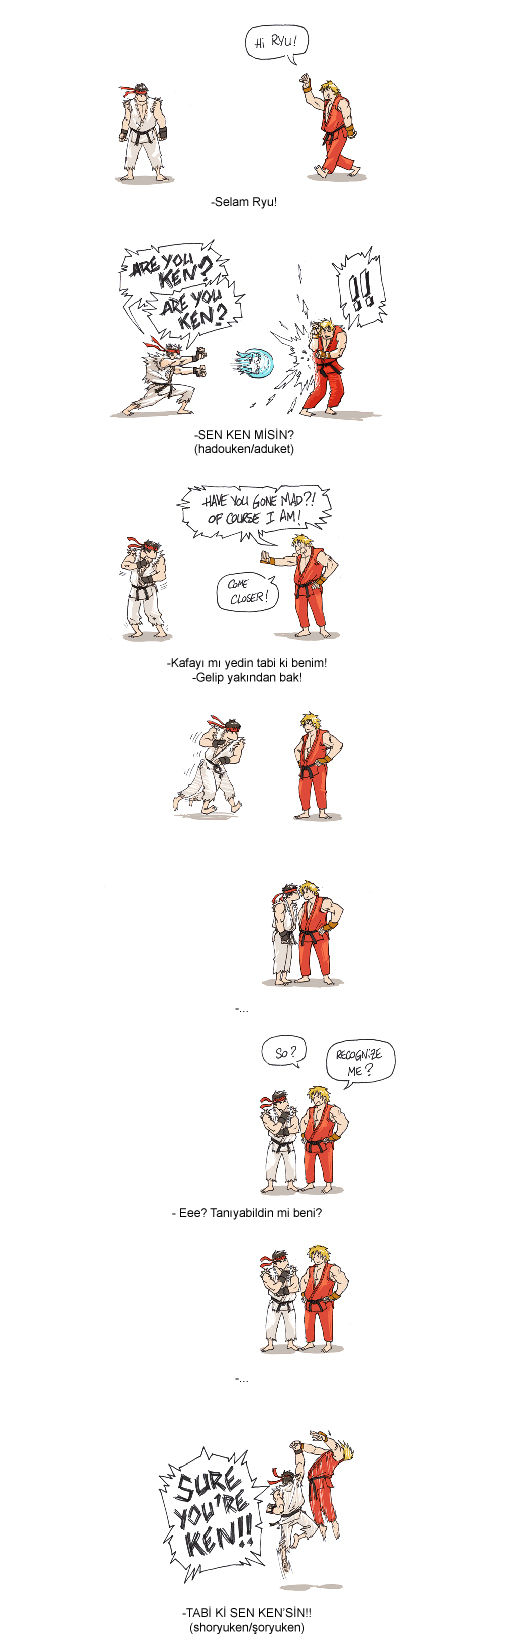 Street Fighter fun story